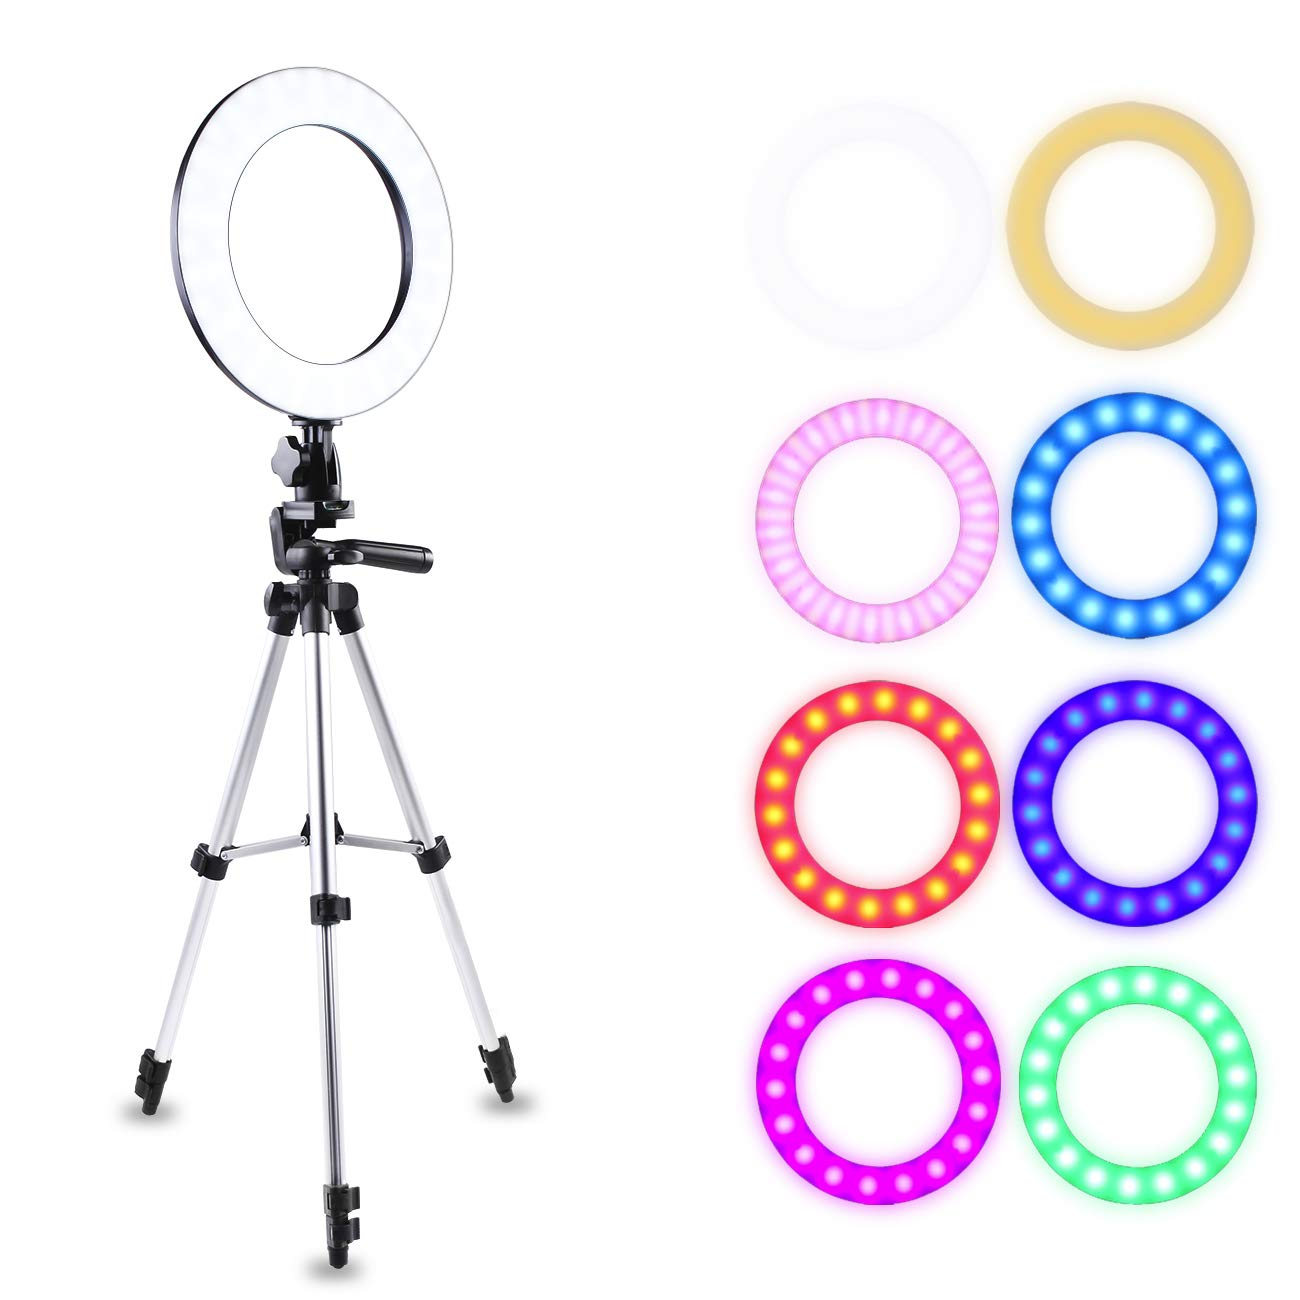 Atuten 10'' Selfie RGB Ring Light with Stretchable Tripod Stand & Cell Phone Holder for Live Stream, Makeup, YouTube Video, Photography (Black)